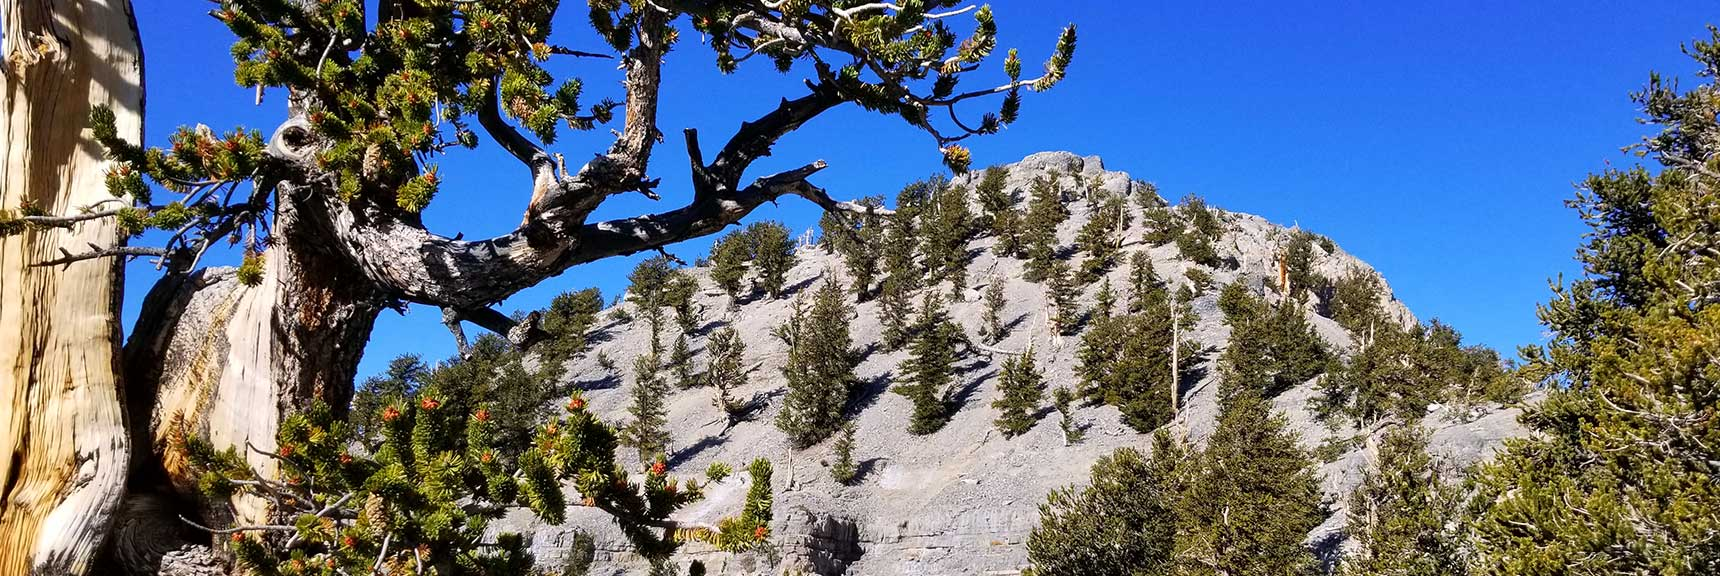 Lee Peak from Kyle Canyon | Mt Charleston Wilderness | Spring Mountains, Nevada